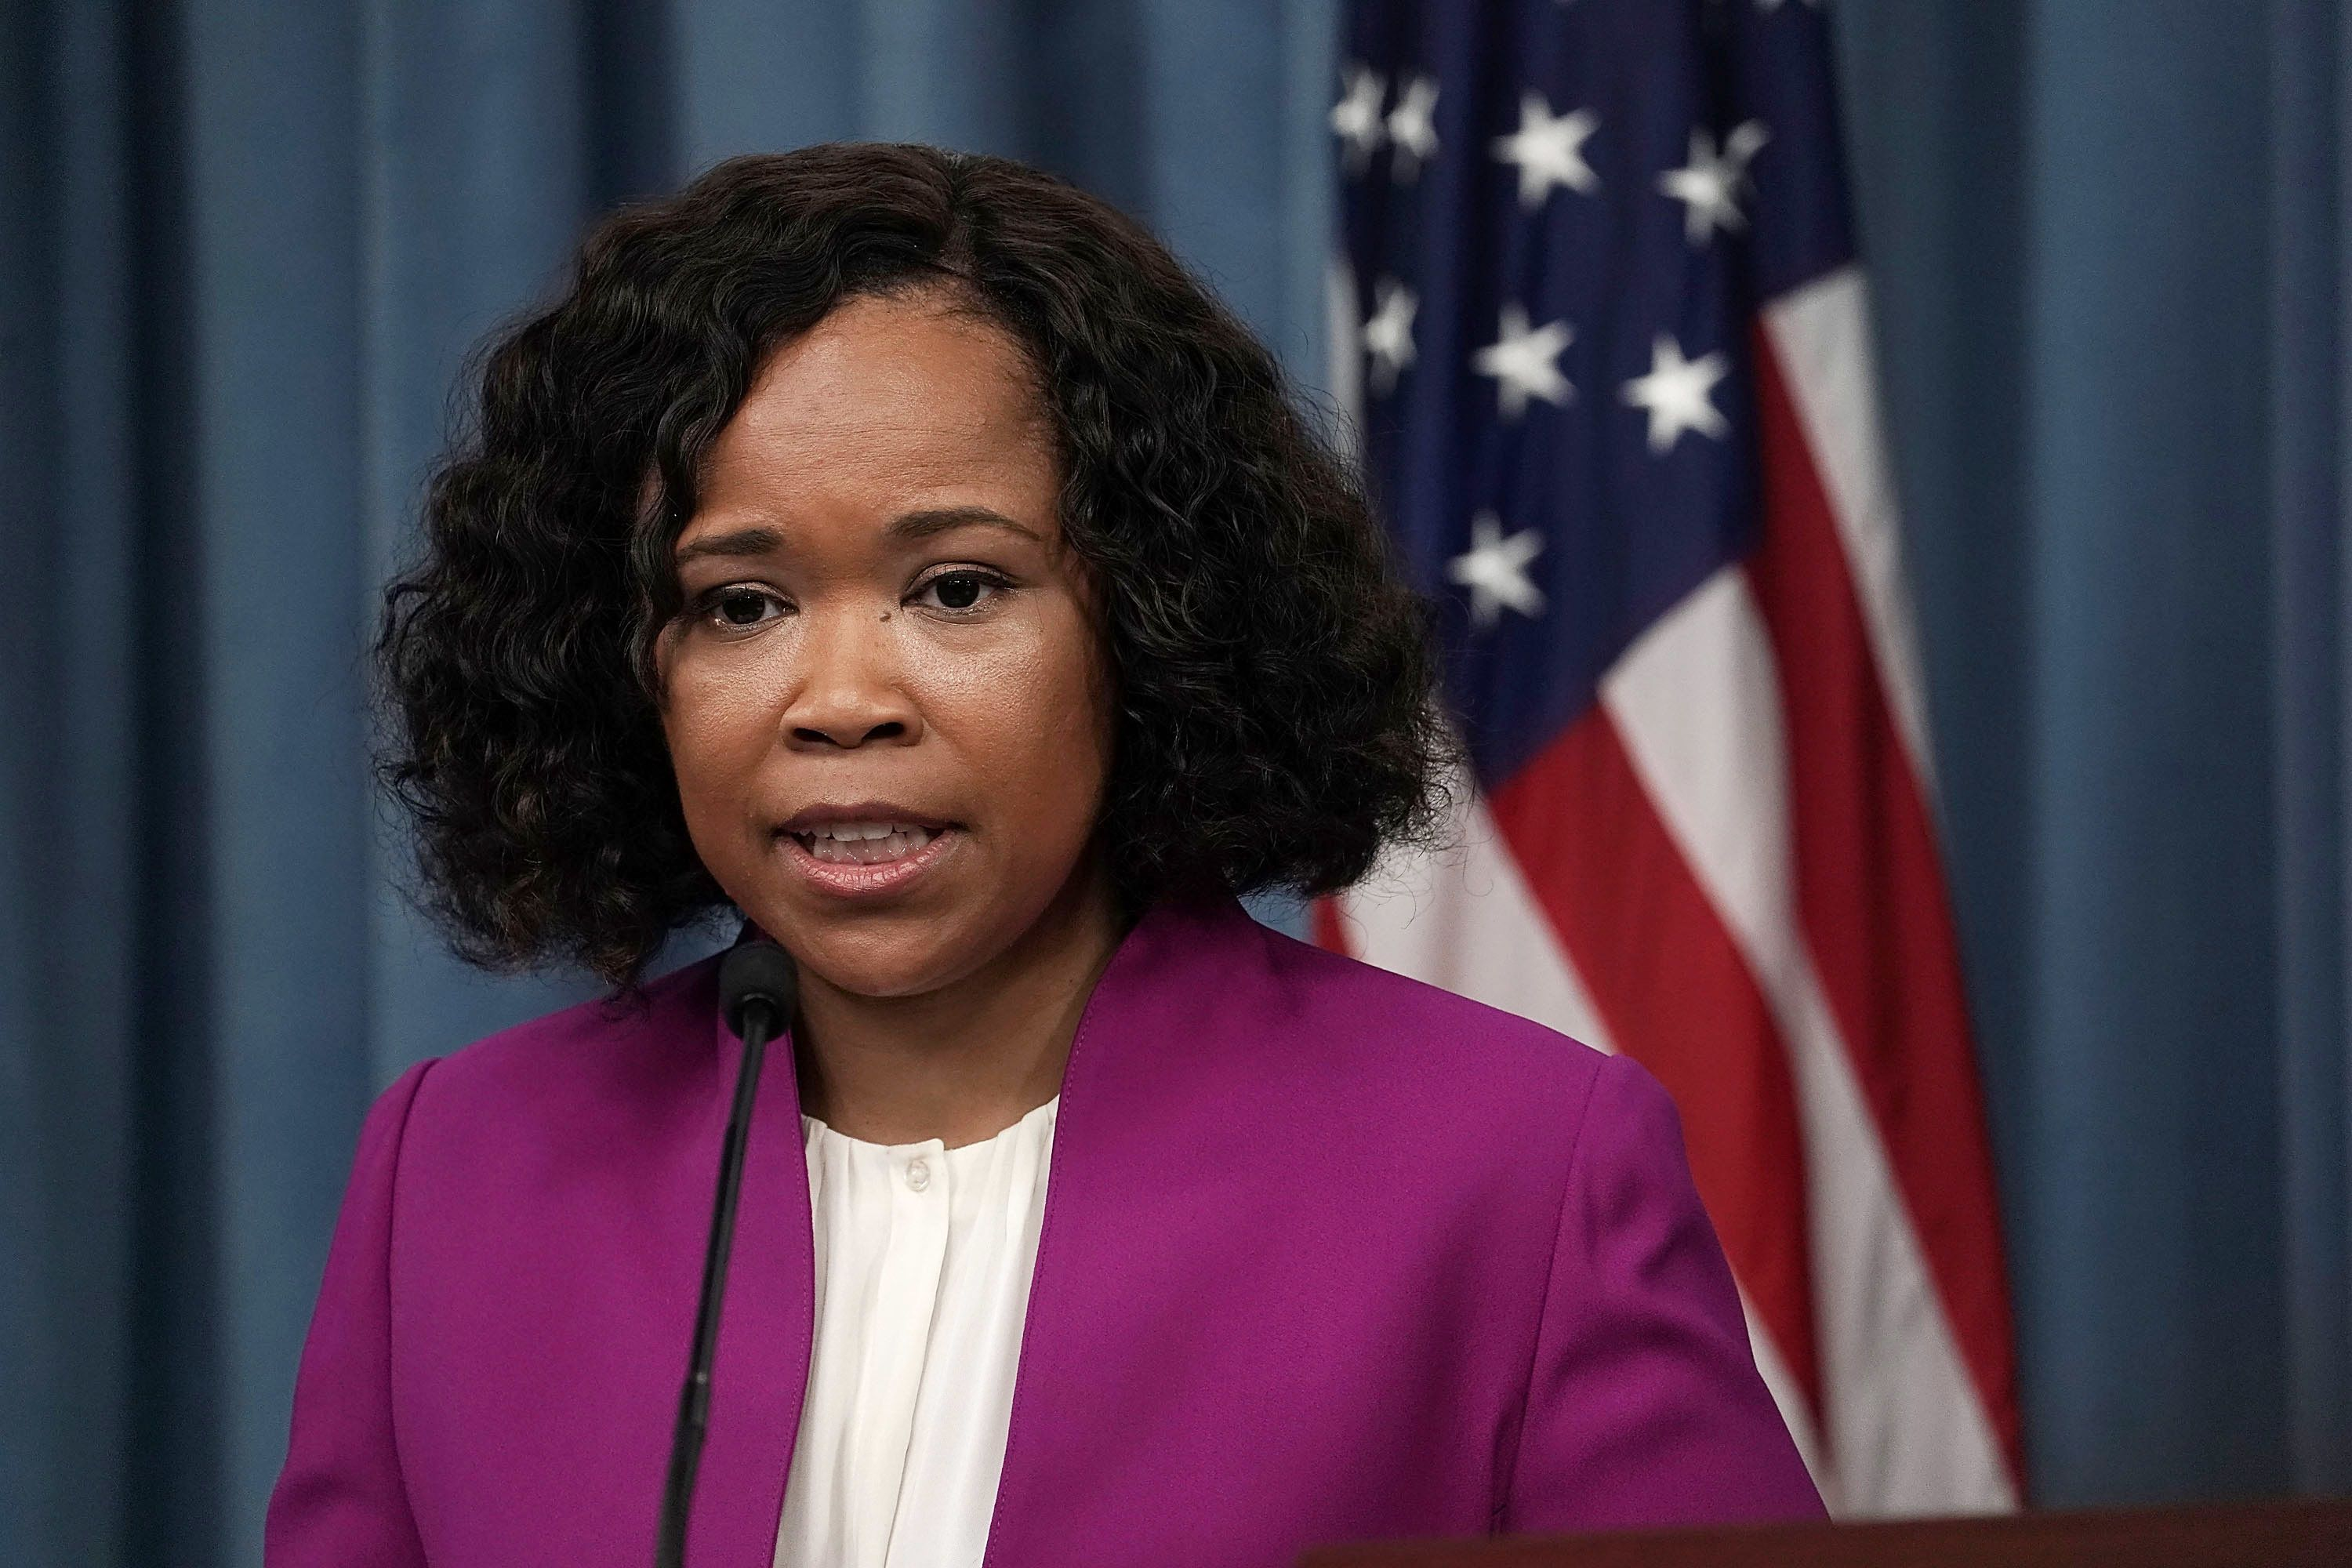 Pentagon Spokeswoman Dana White Under Investigation For Misusing Staff